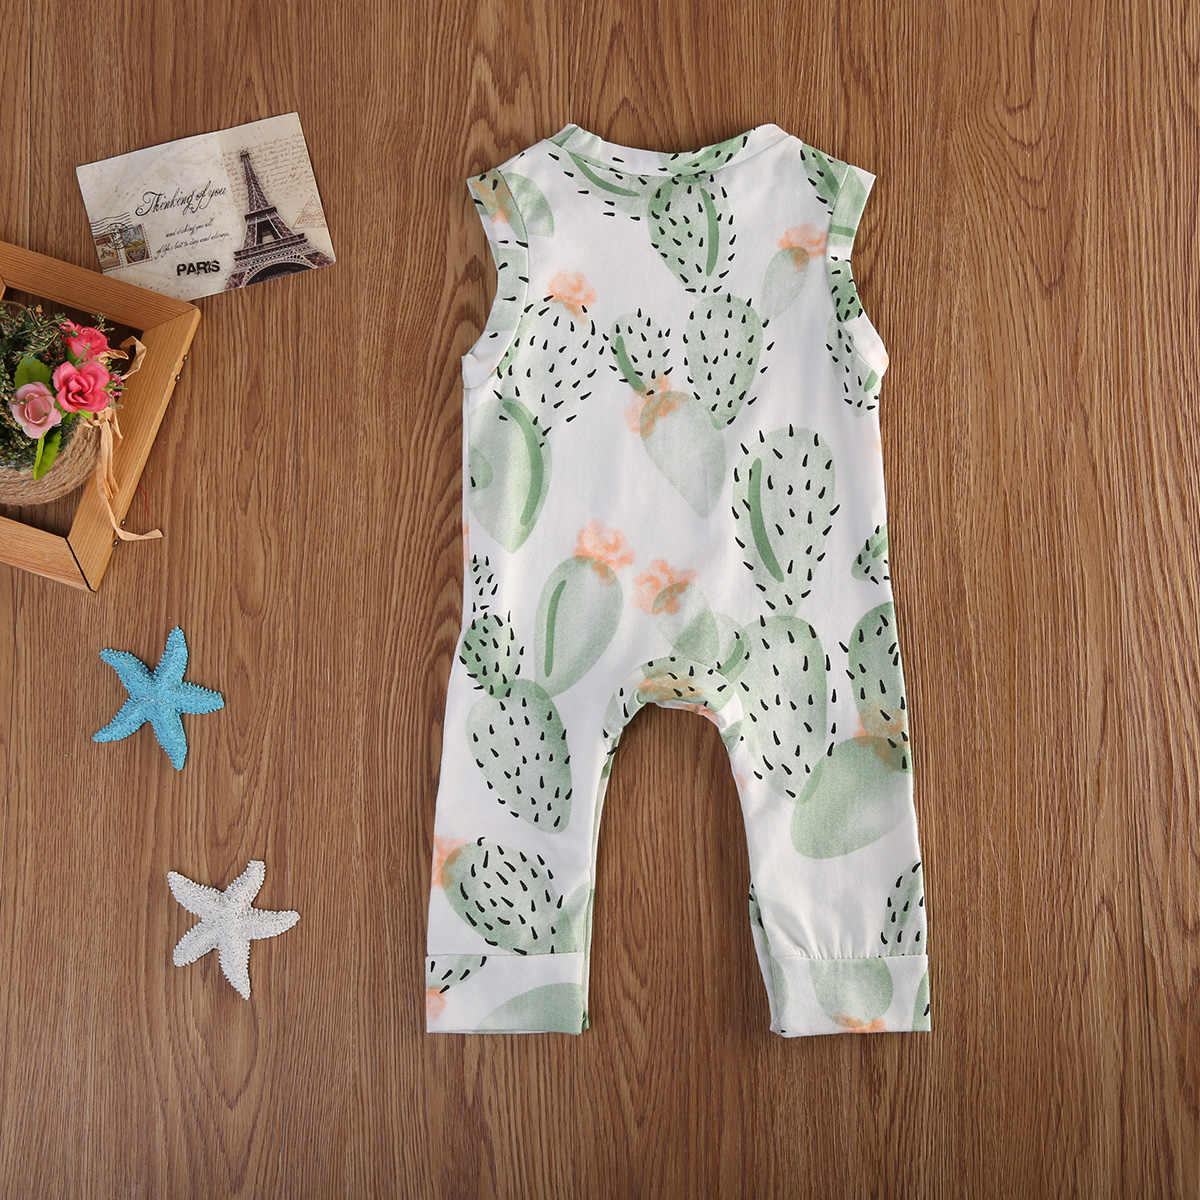 6e408b854dfc ... Summer cactus Baby Clothing Toddler Baby Boy Girl Kids Cotton Floral Romper  Jumpsuit Clothes Outfit ...